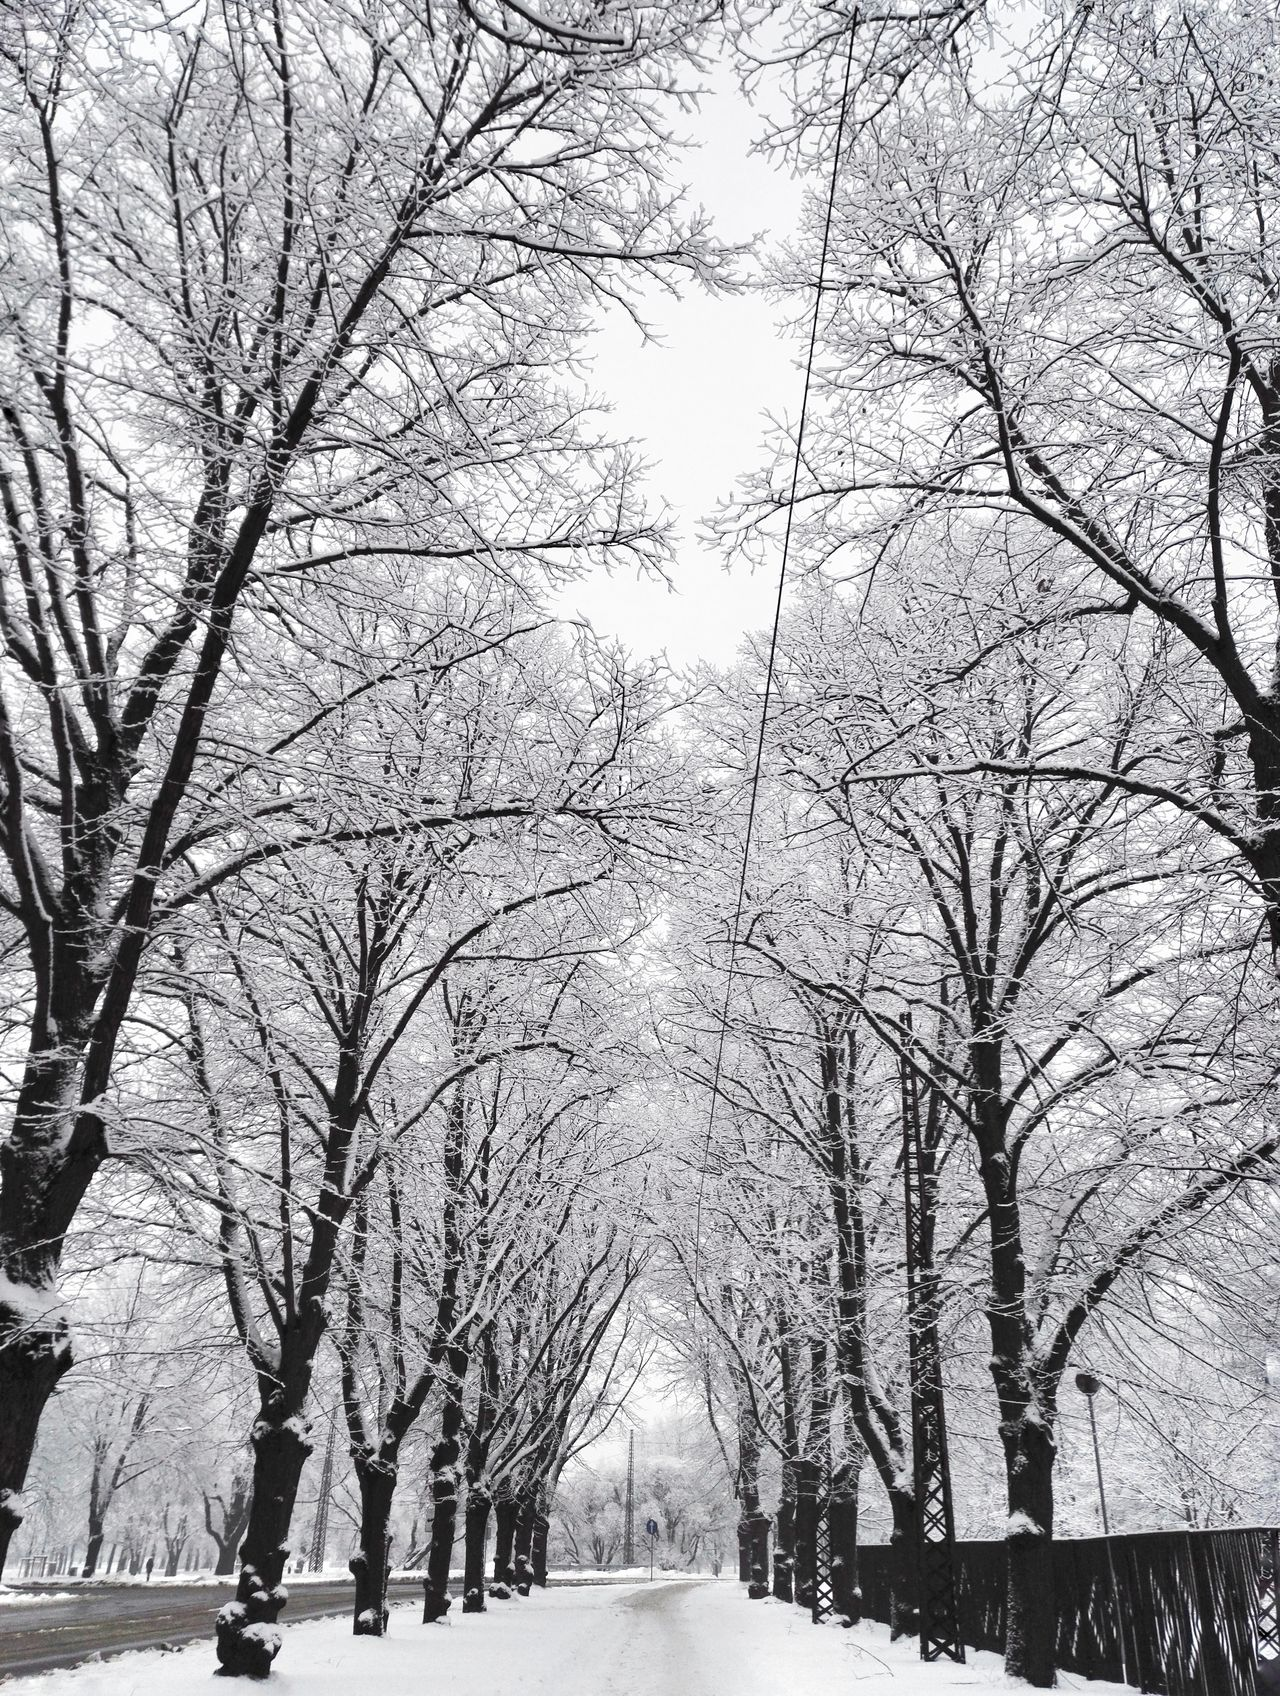 Cityscape Day Cold Temperature Tranquility Winter Black And White Enjoying Life Snow Hello World Weather City Trees The Way Forward